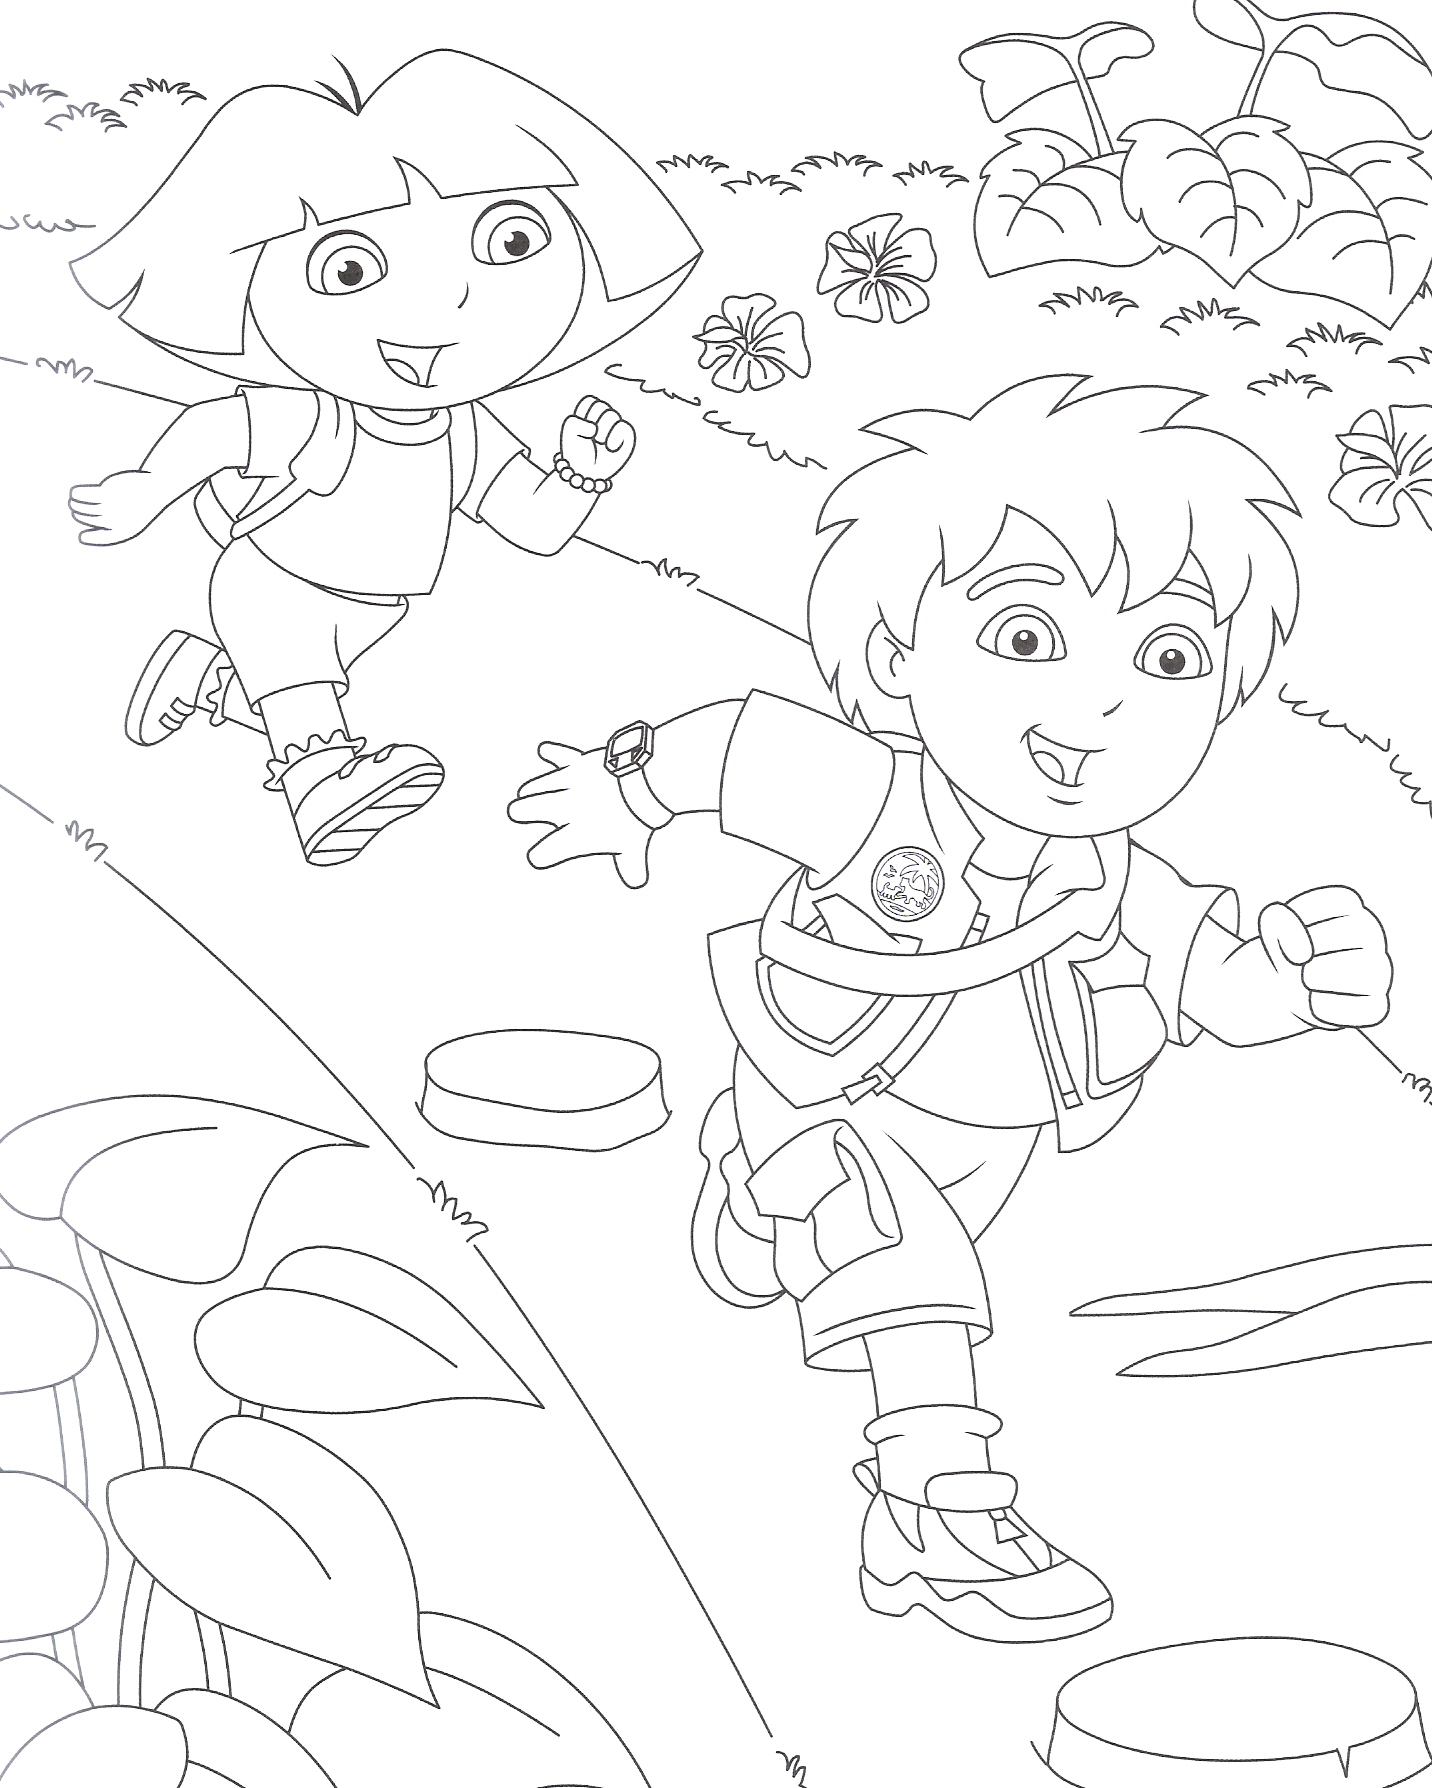 robby and mak coloring pages - photo#16